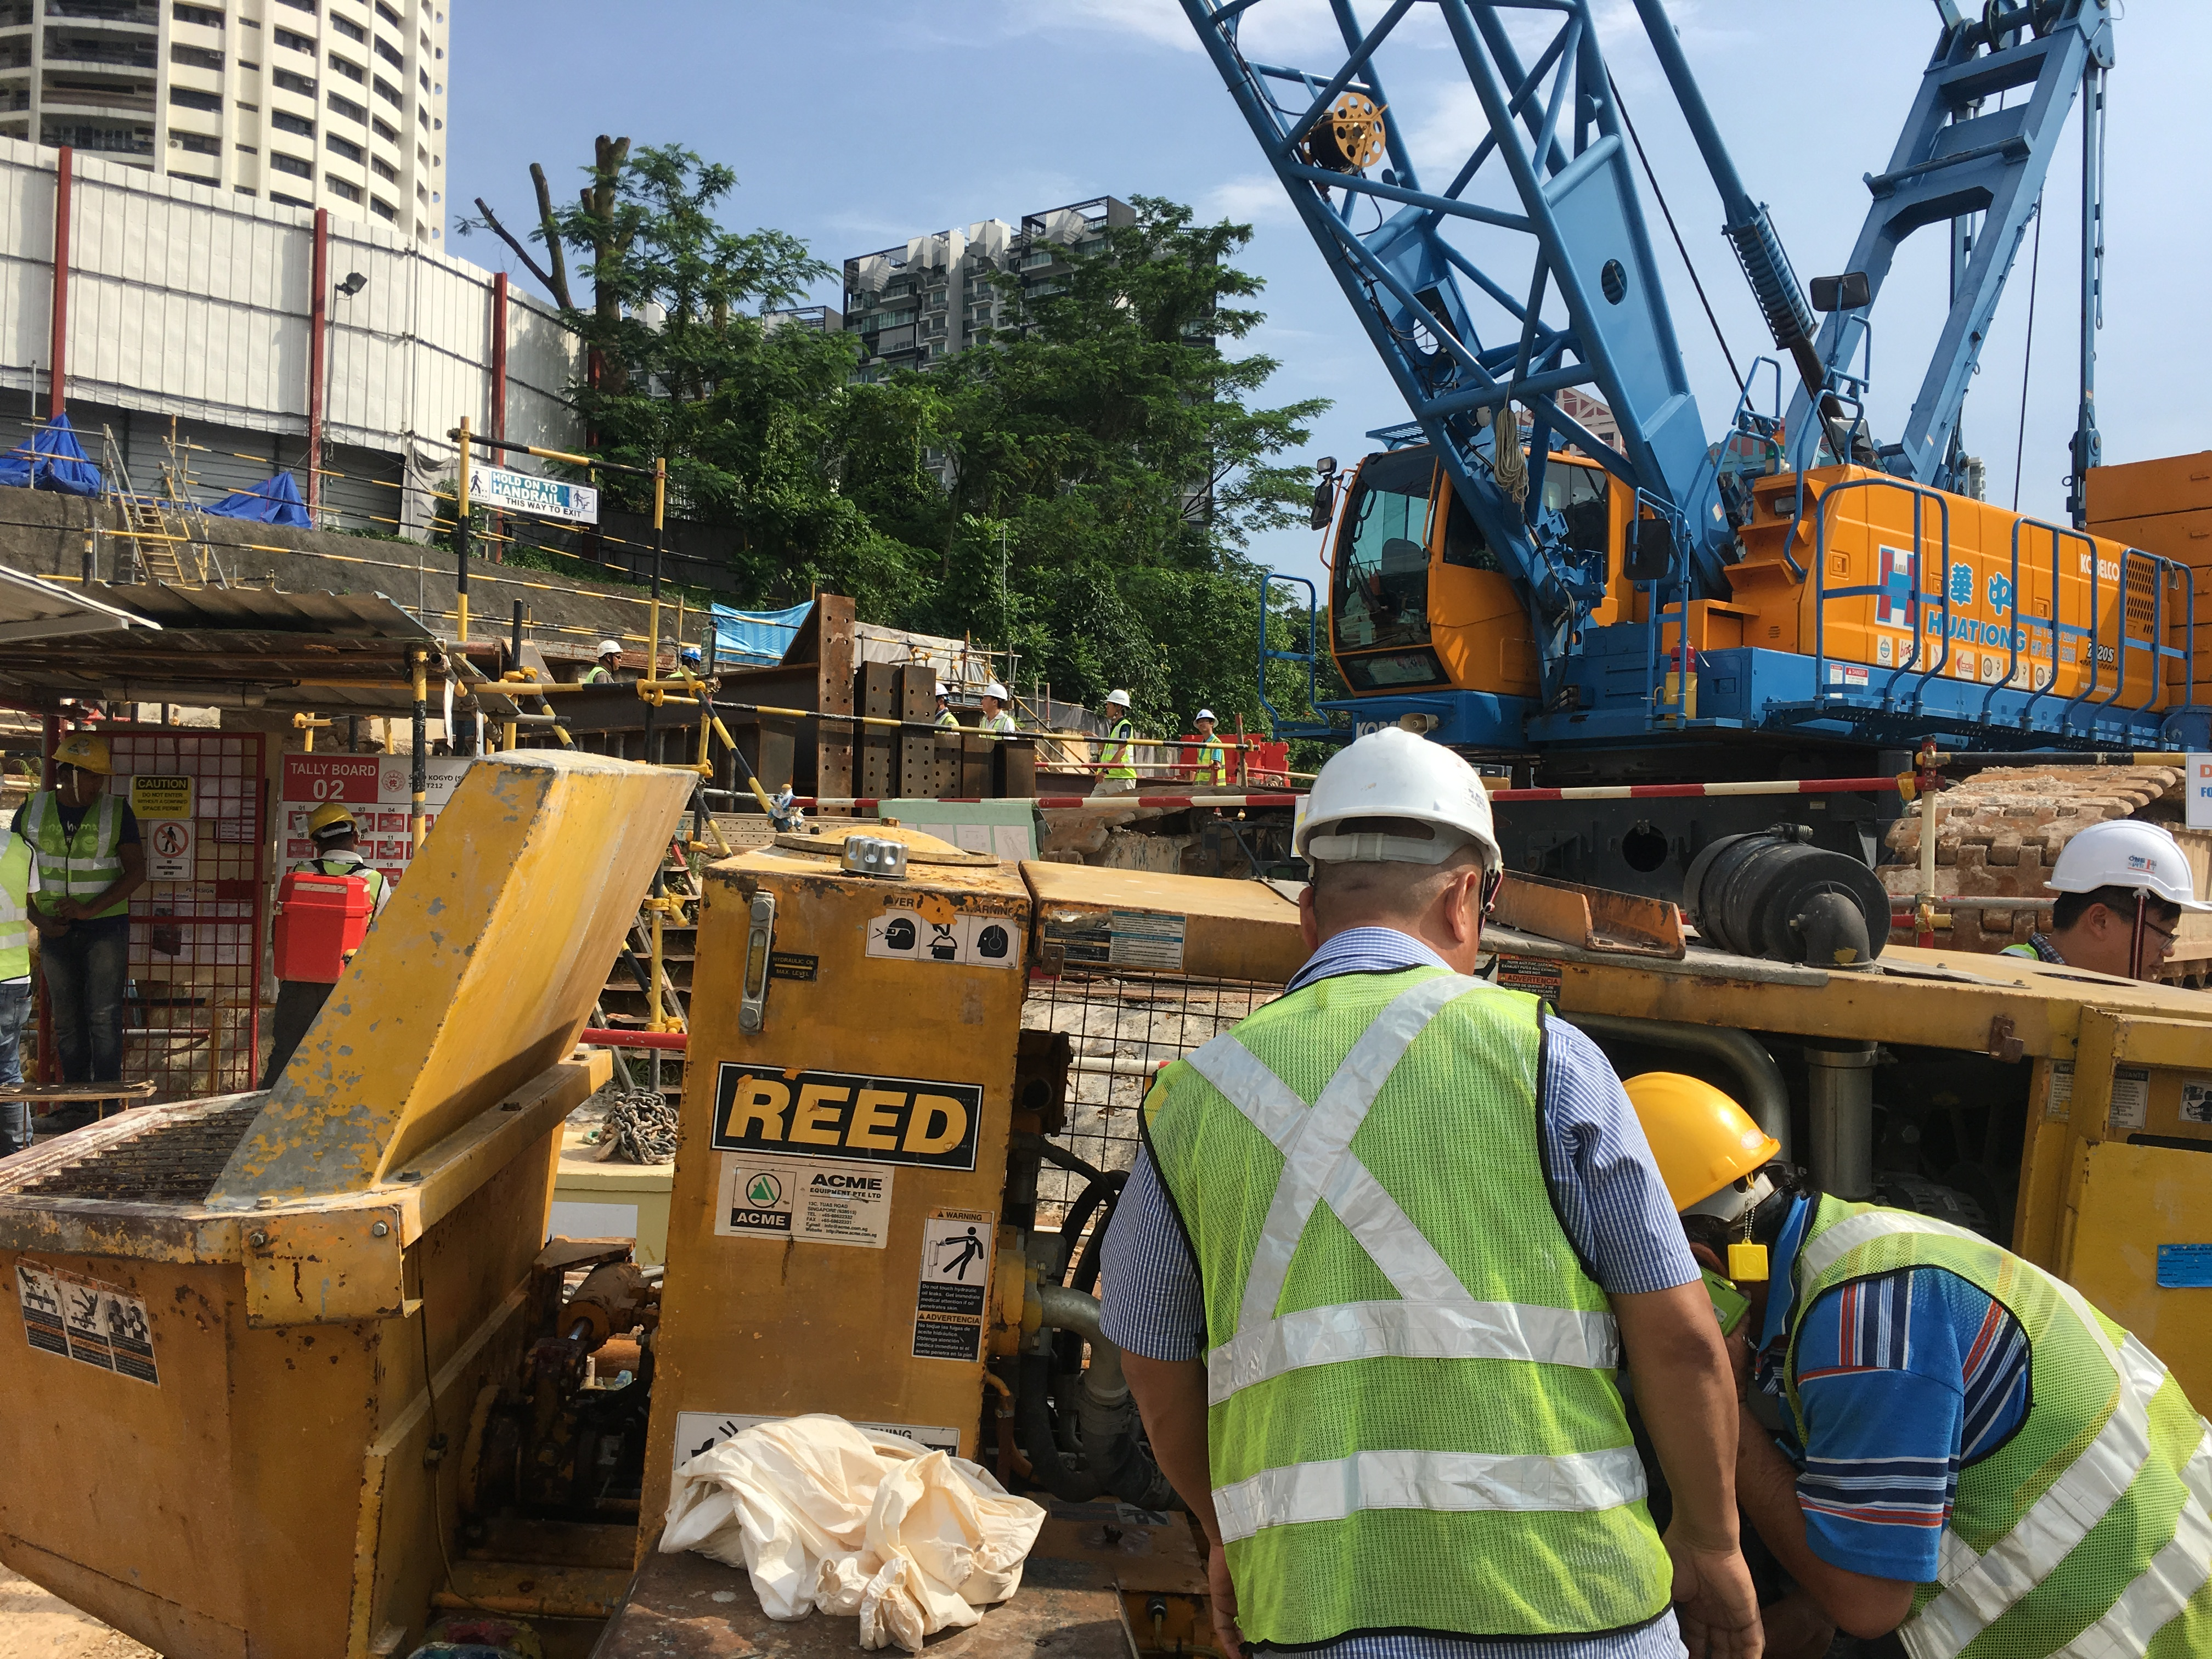 Reed A Series Singapore MRT Project